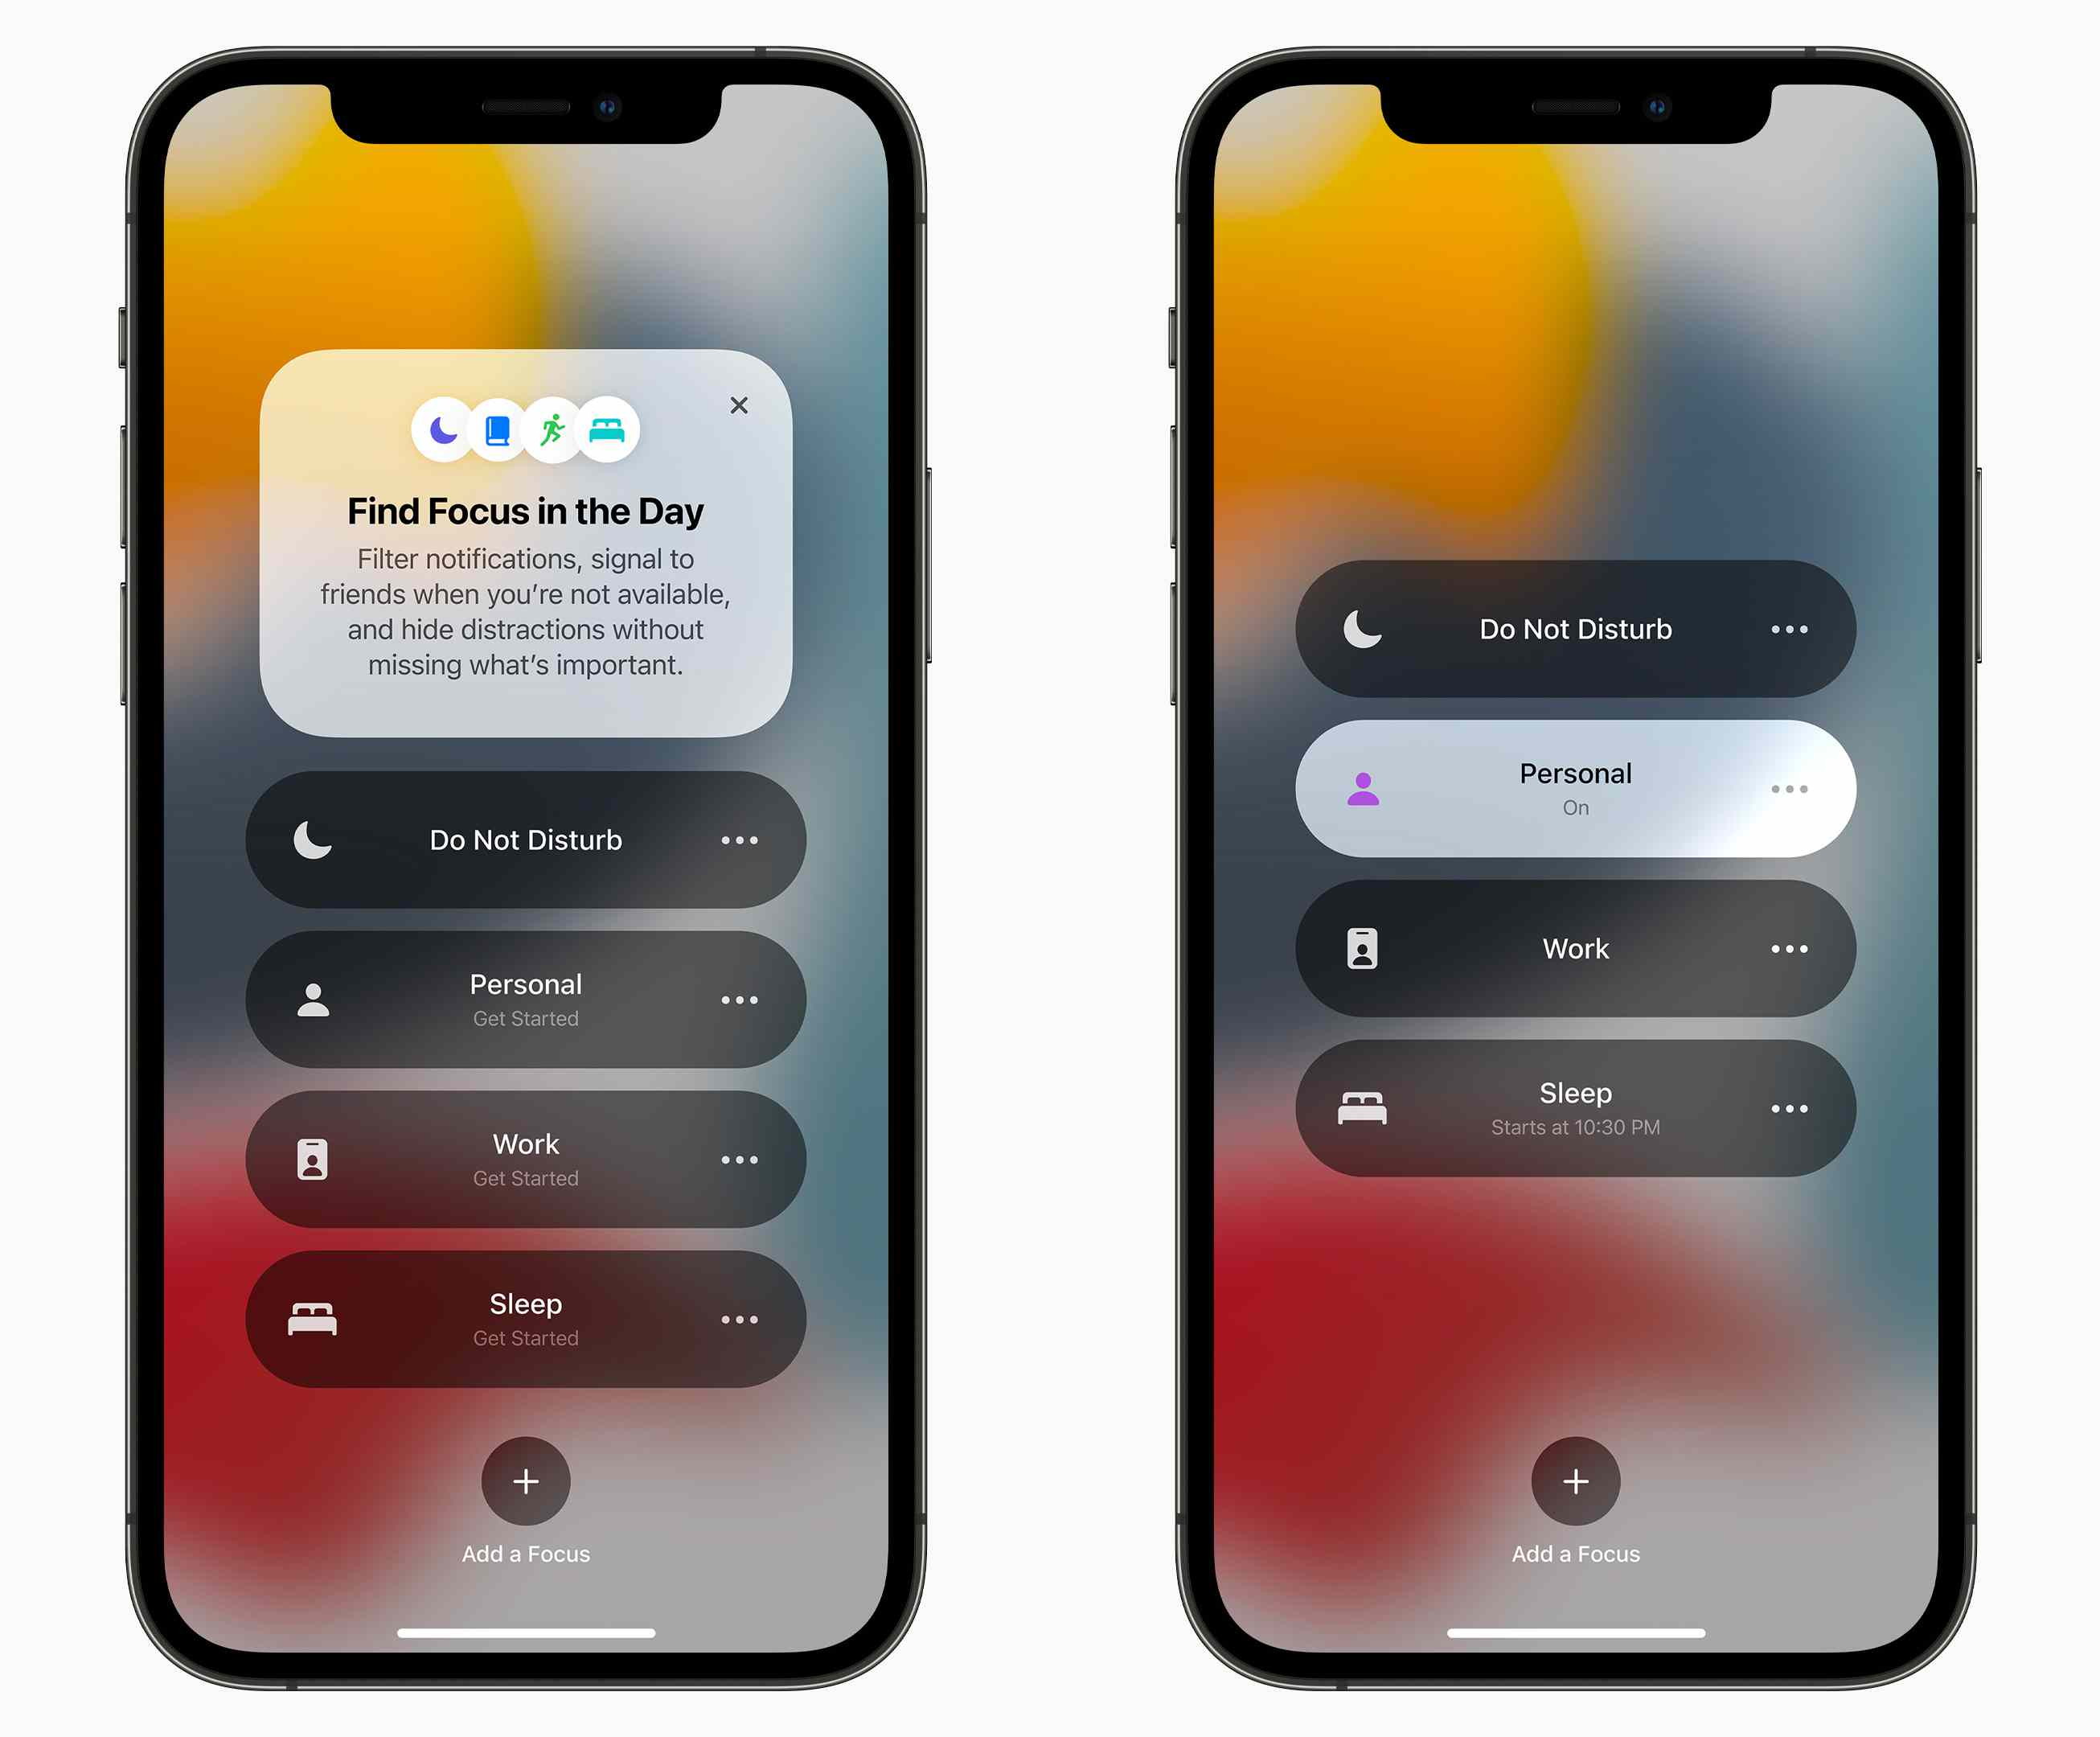 Screenshots of the Focus mode in iOS 15.